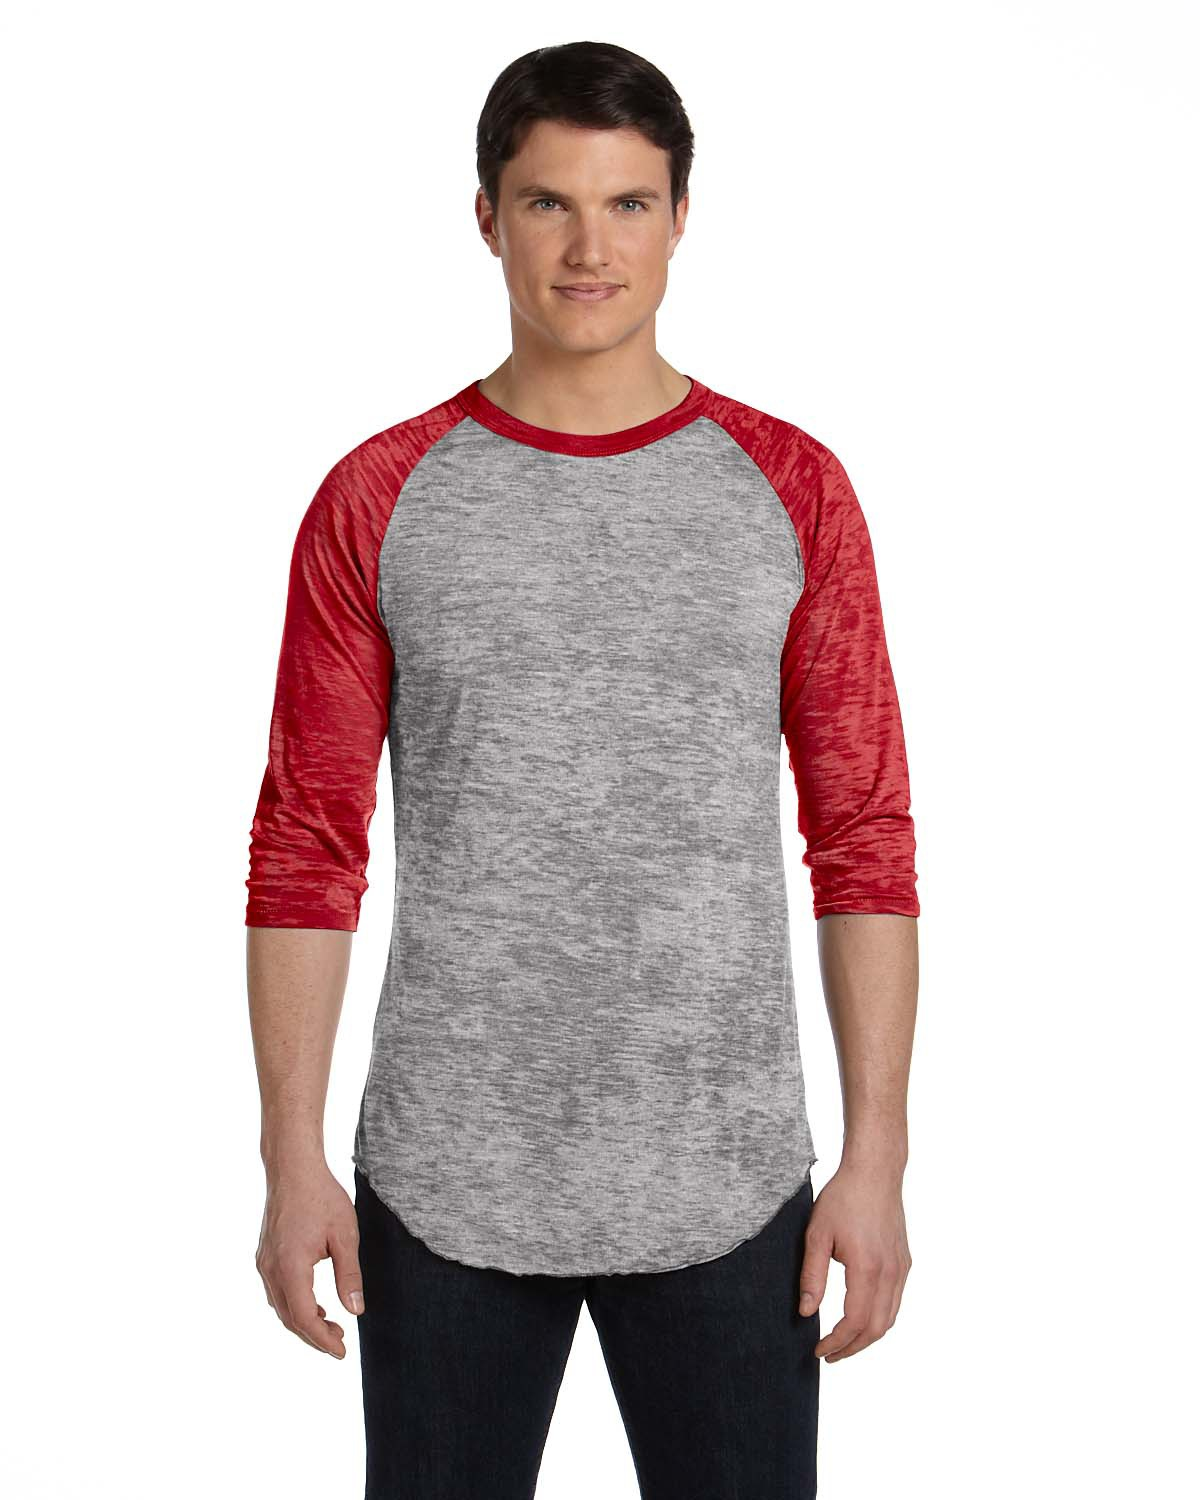 click to view GREY HEATHER/ RED